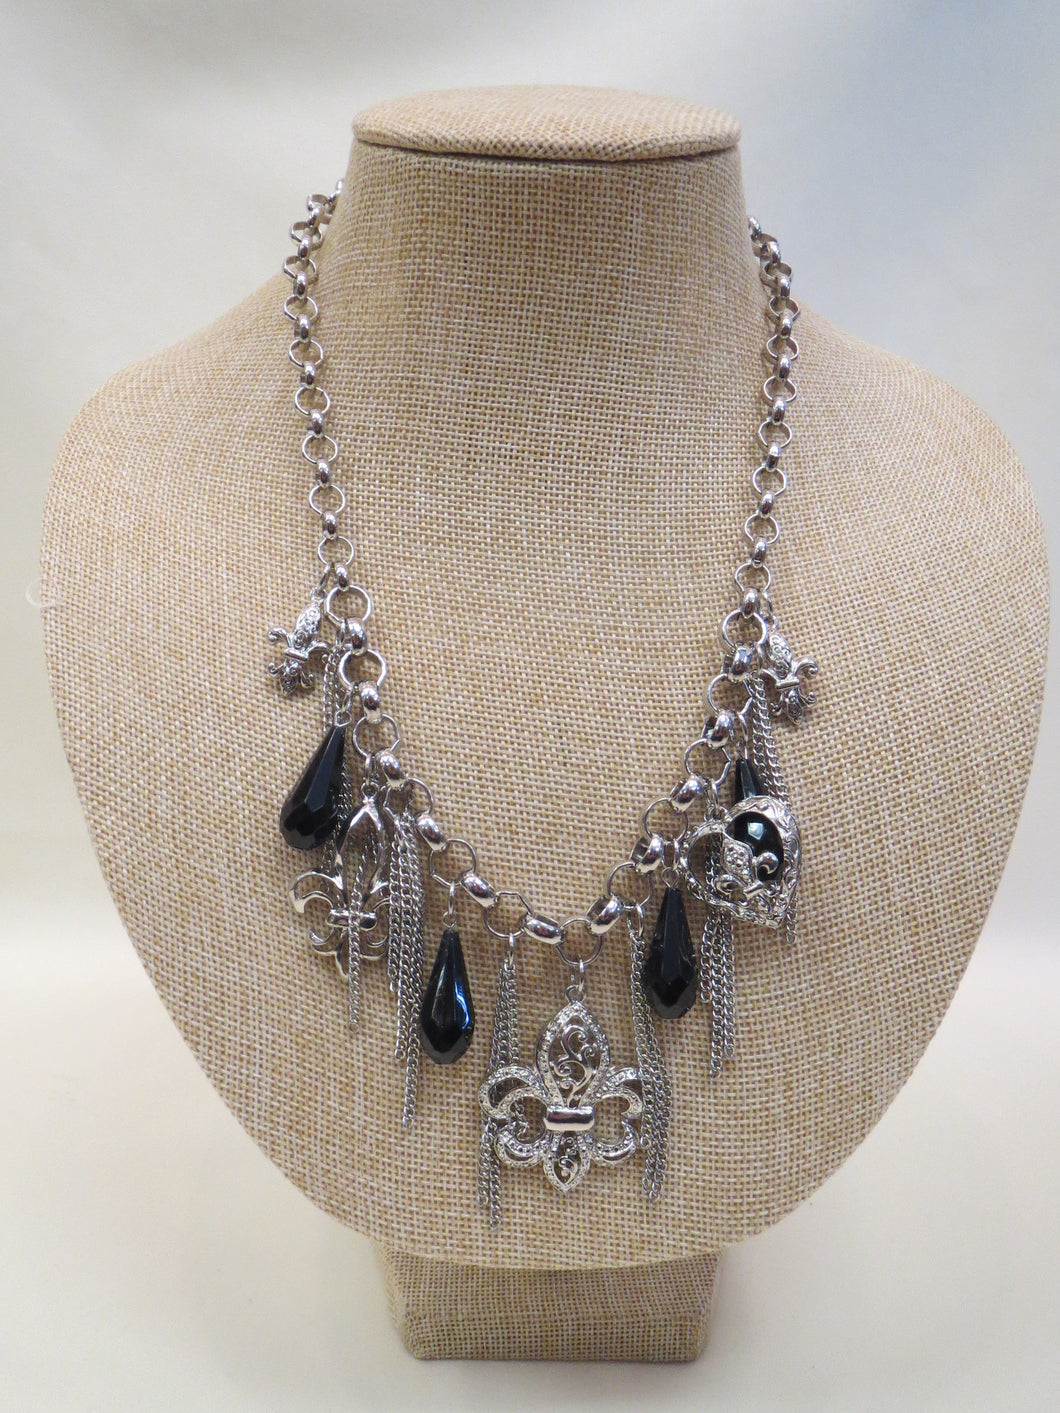 ADO | Fleur De Lis Charm Necklace - All Decd Out